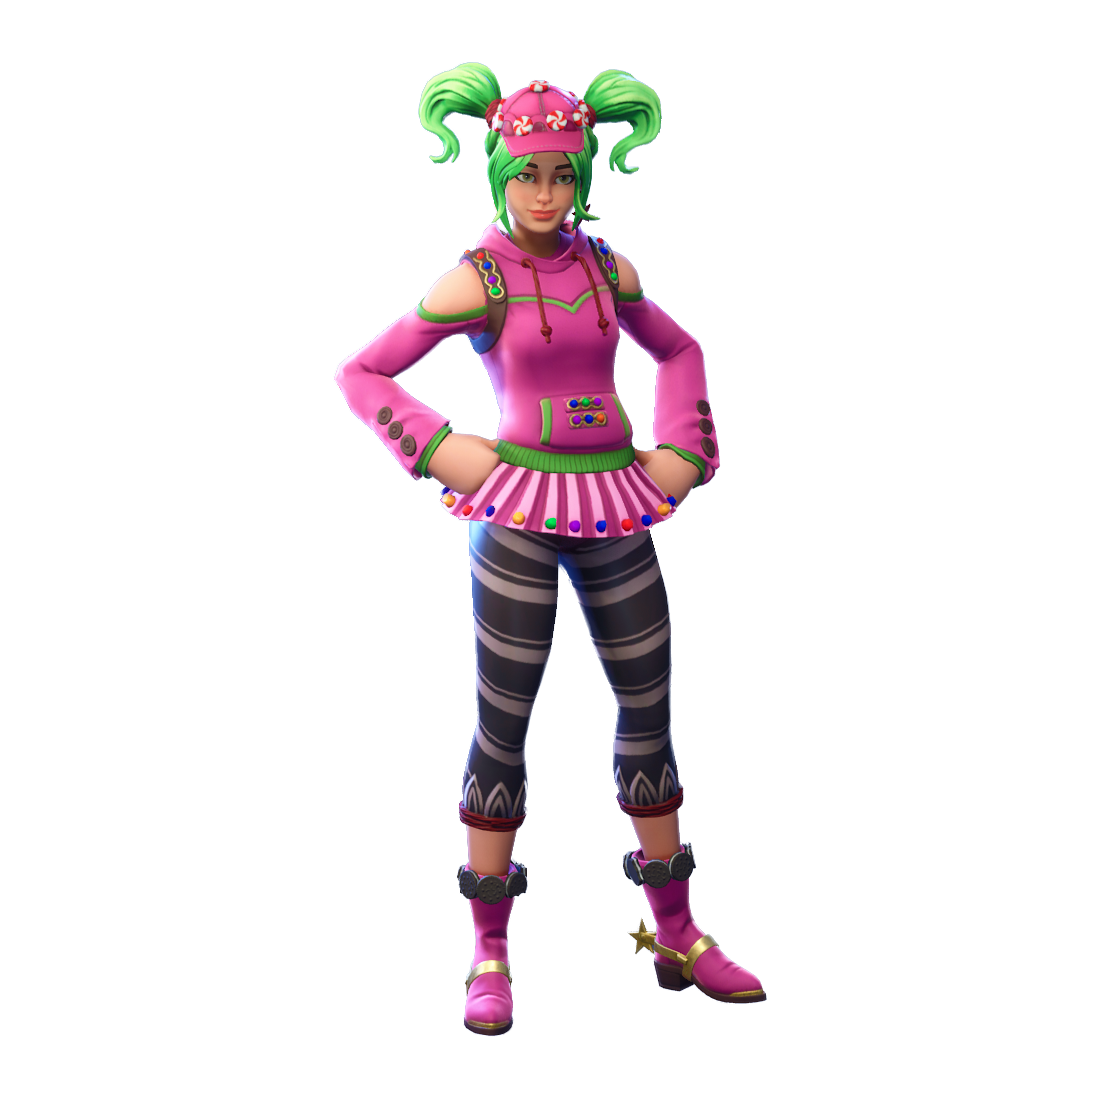 Fortnite clipart zoey. Png image purepng free